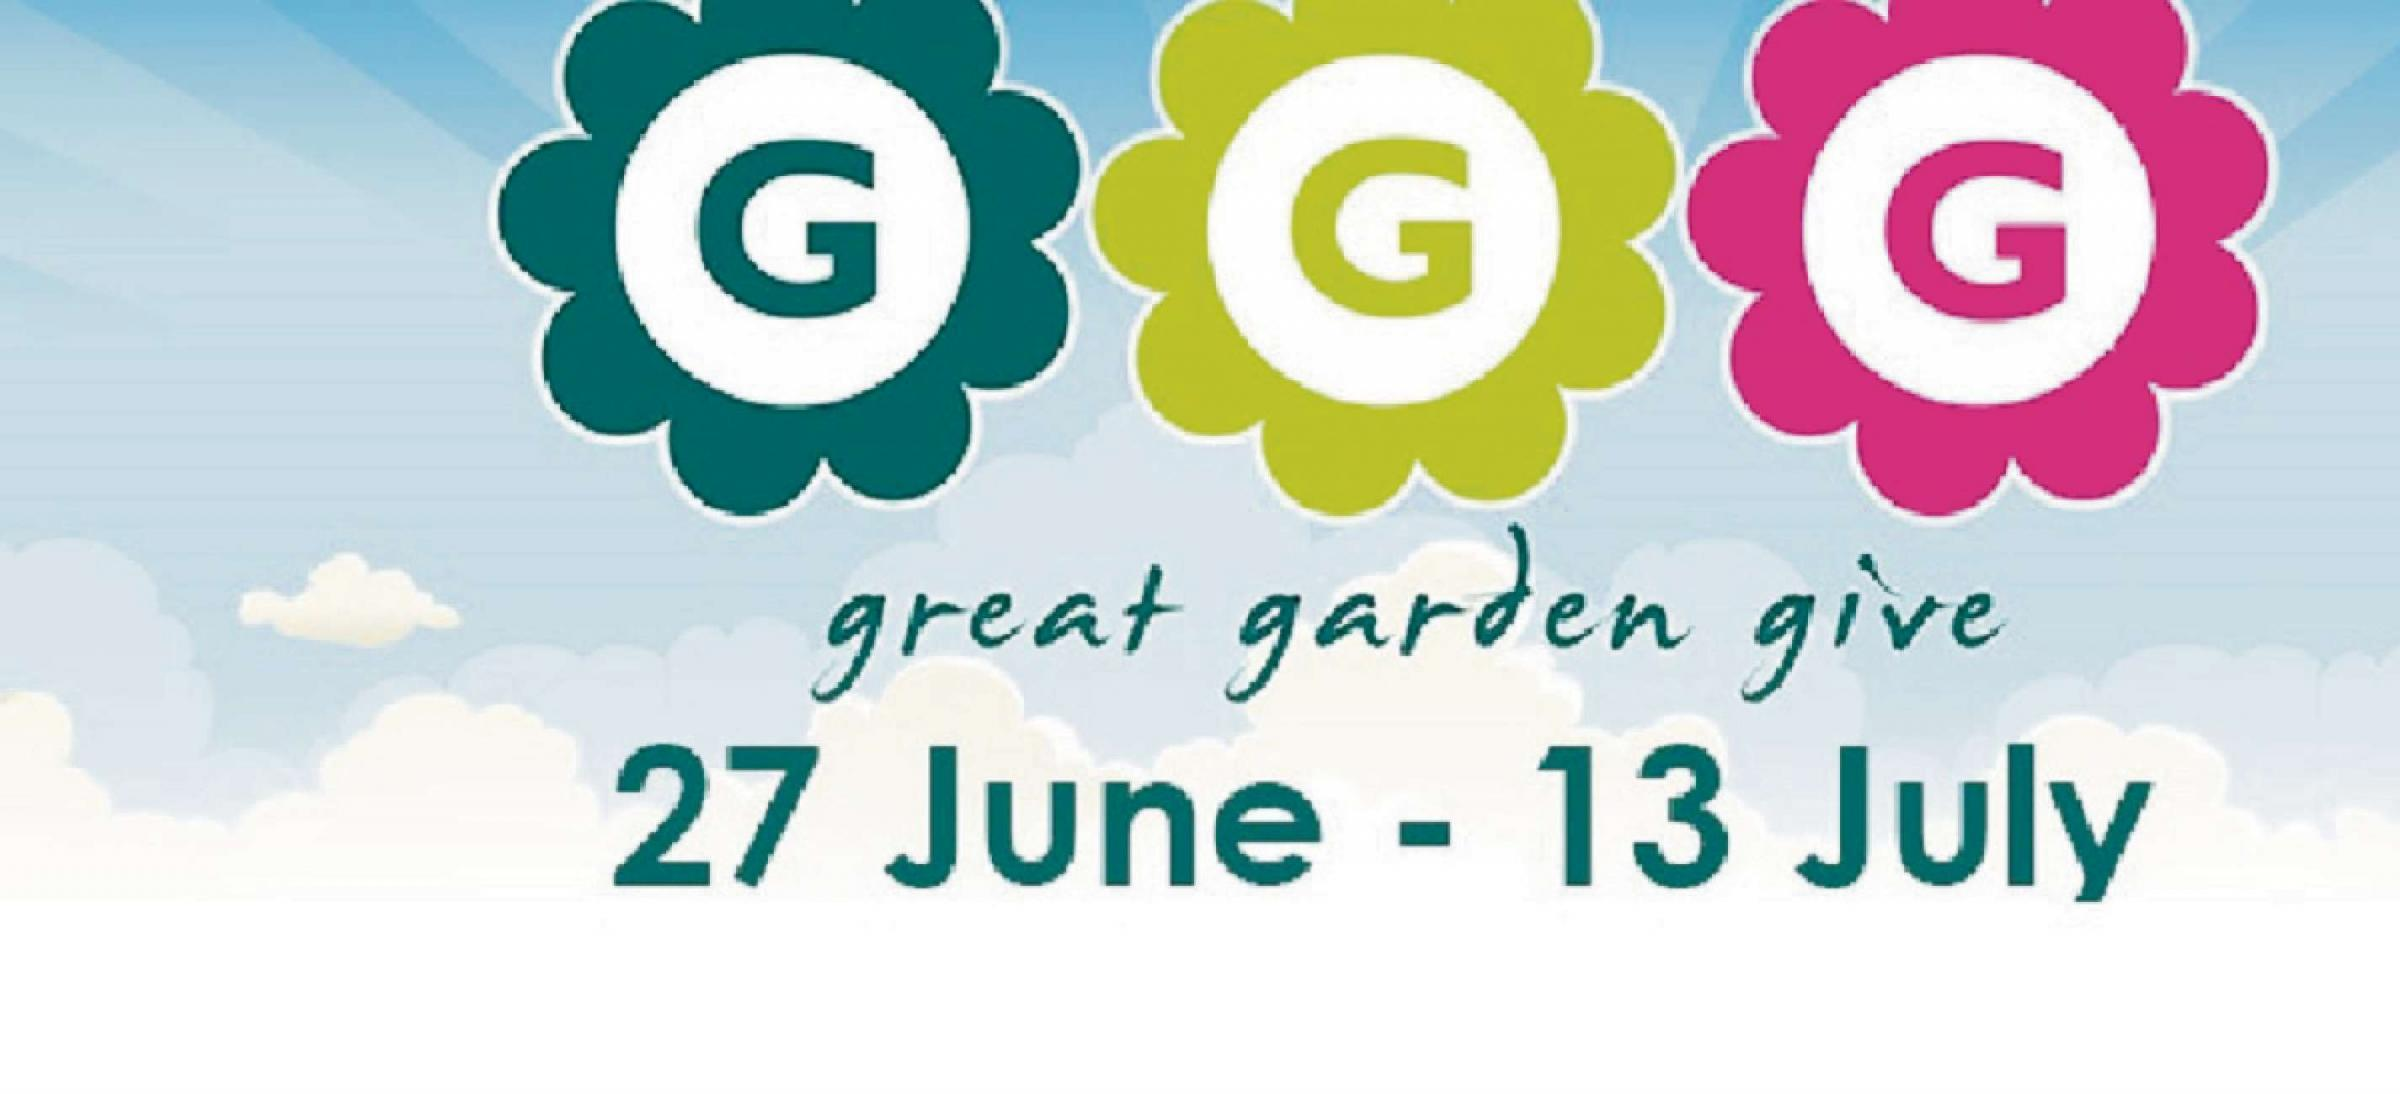 The great Garden Give initiative runs until July 13.